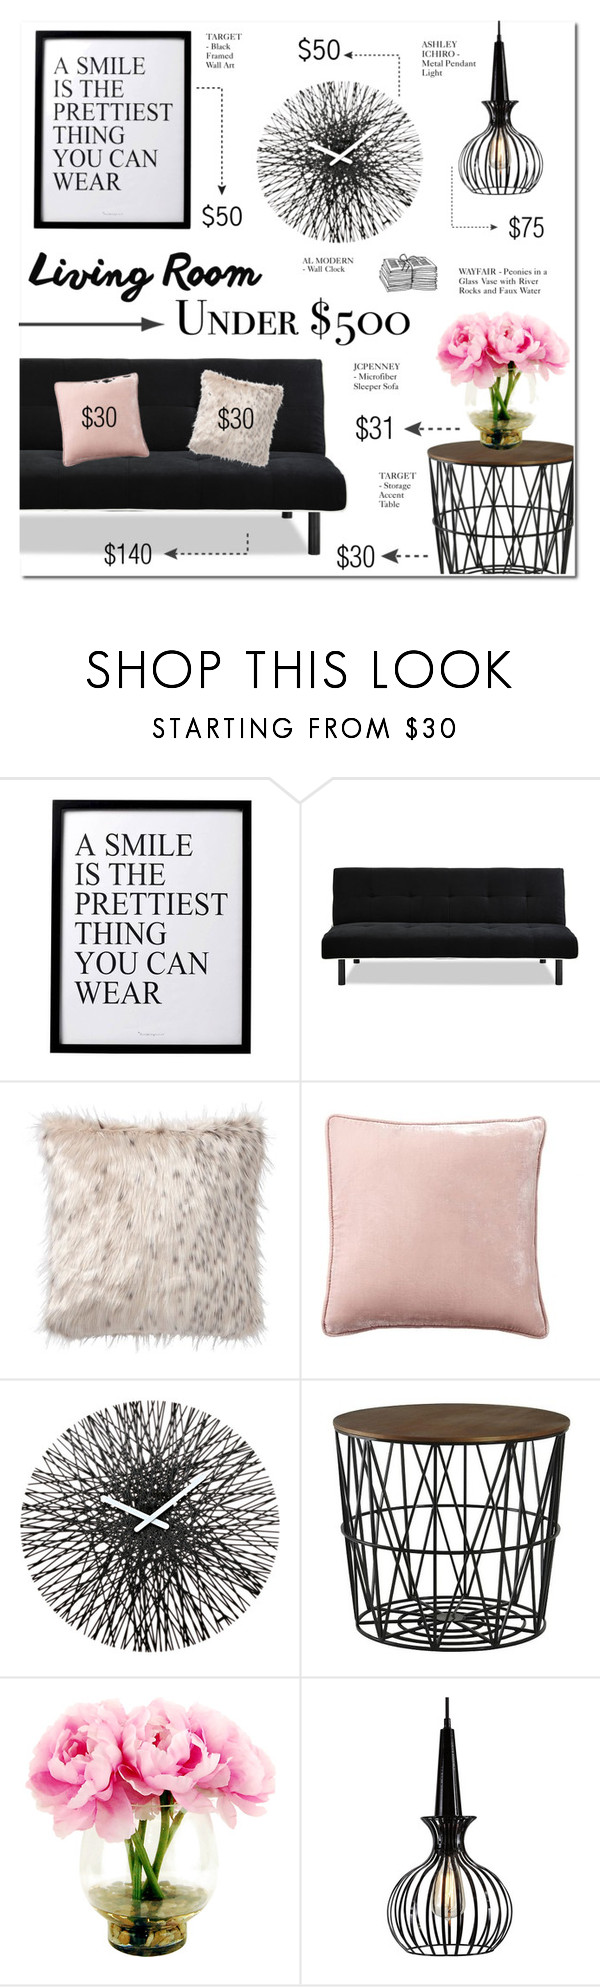 """LIVING ROOM FOR UNDER $500"" by larissa-takahassi ❤ liked on Polyvore featuring interior, interiors, interior design, home, home decor, interior decorating, 3R Studios, PBteen, Pottery Barn and WALL"